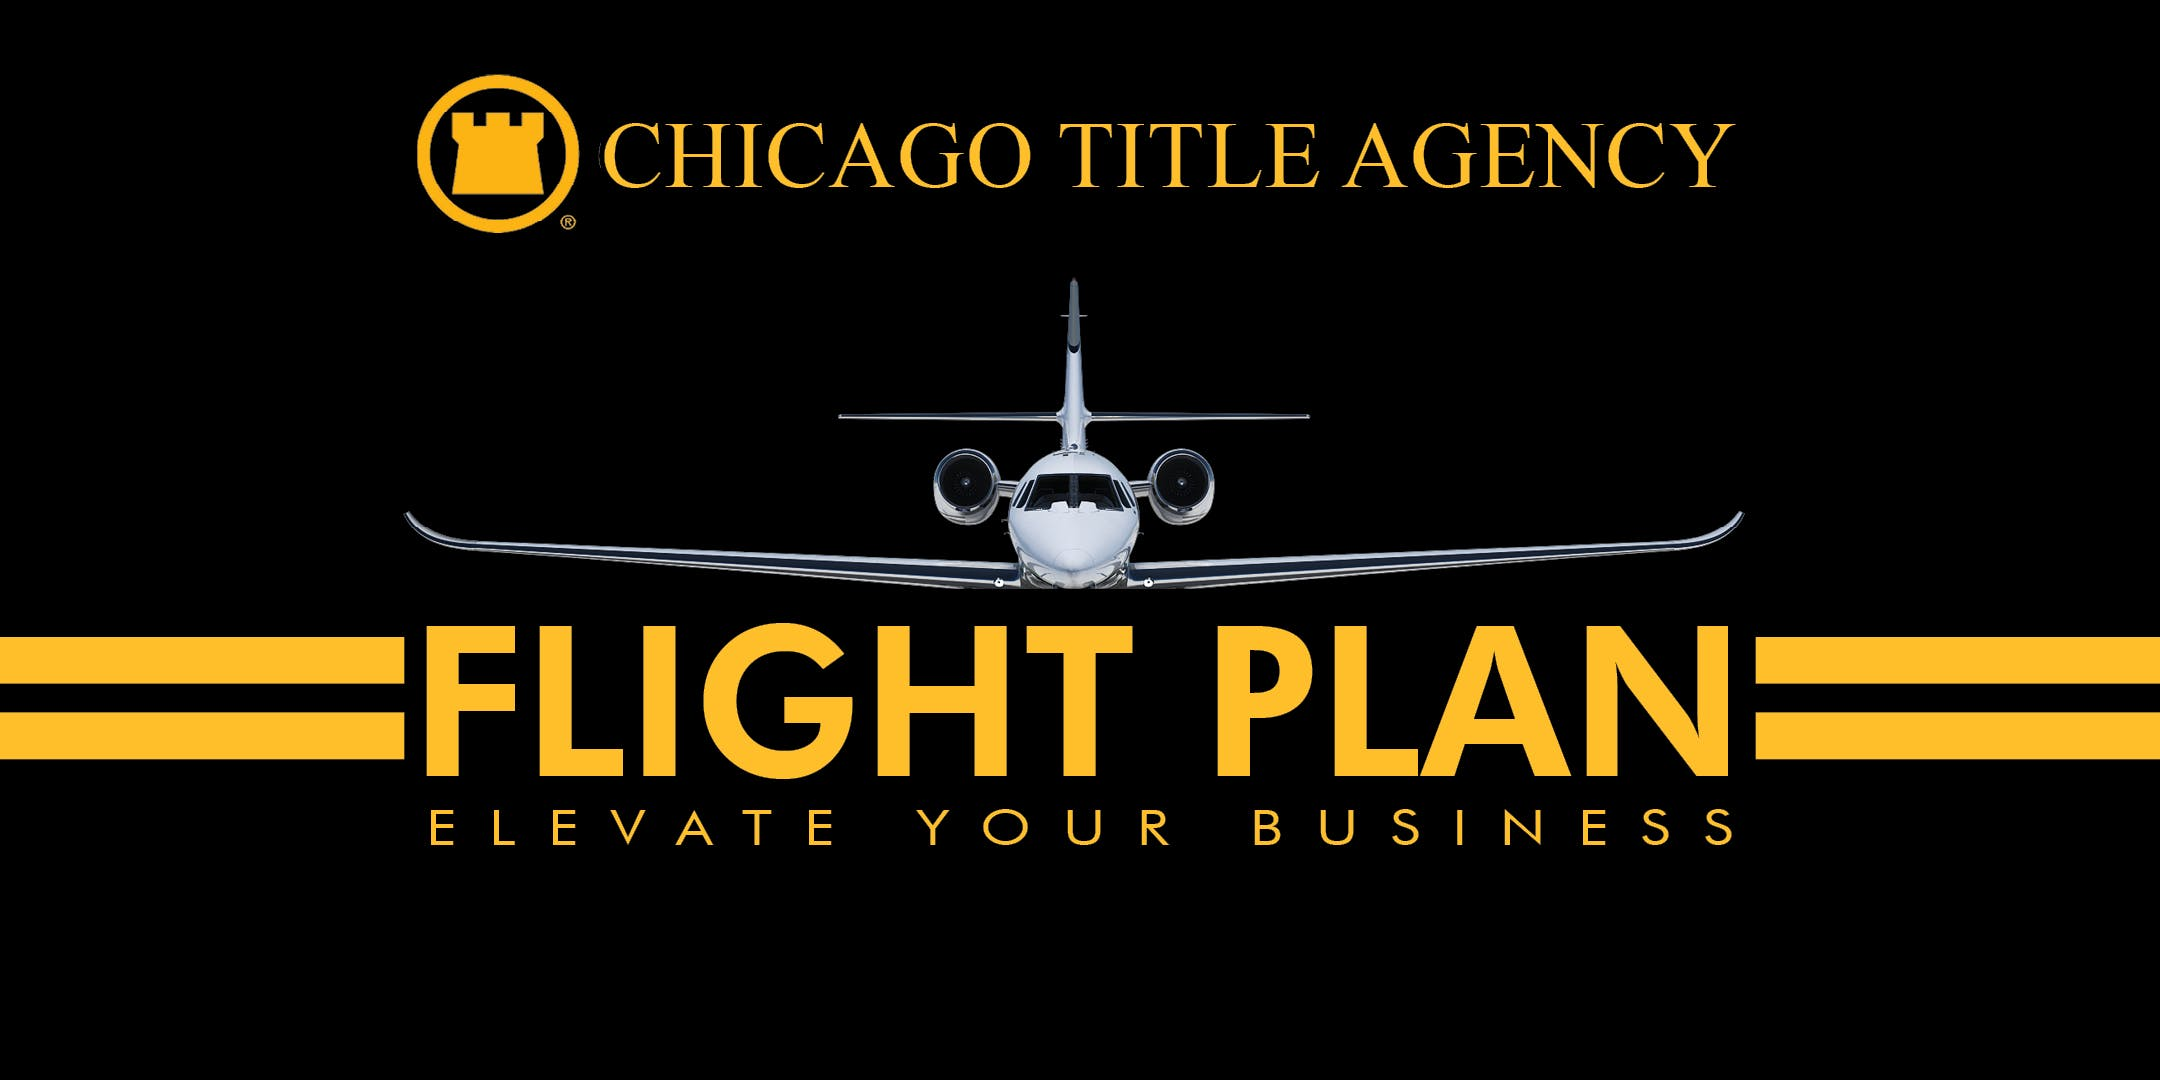 Chicago Title Flight Plan